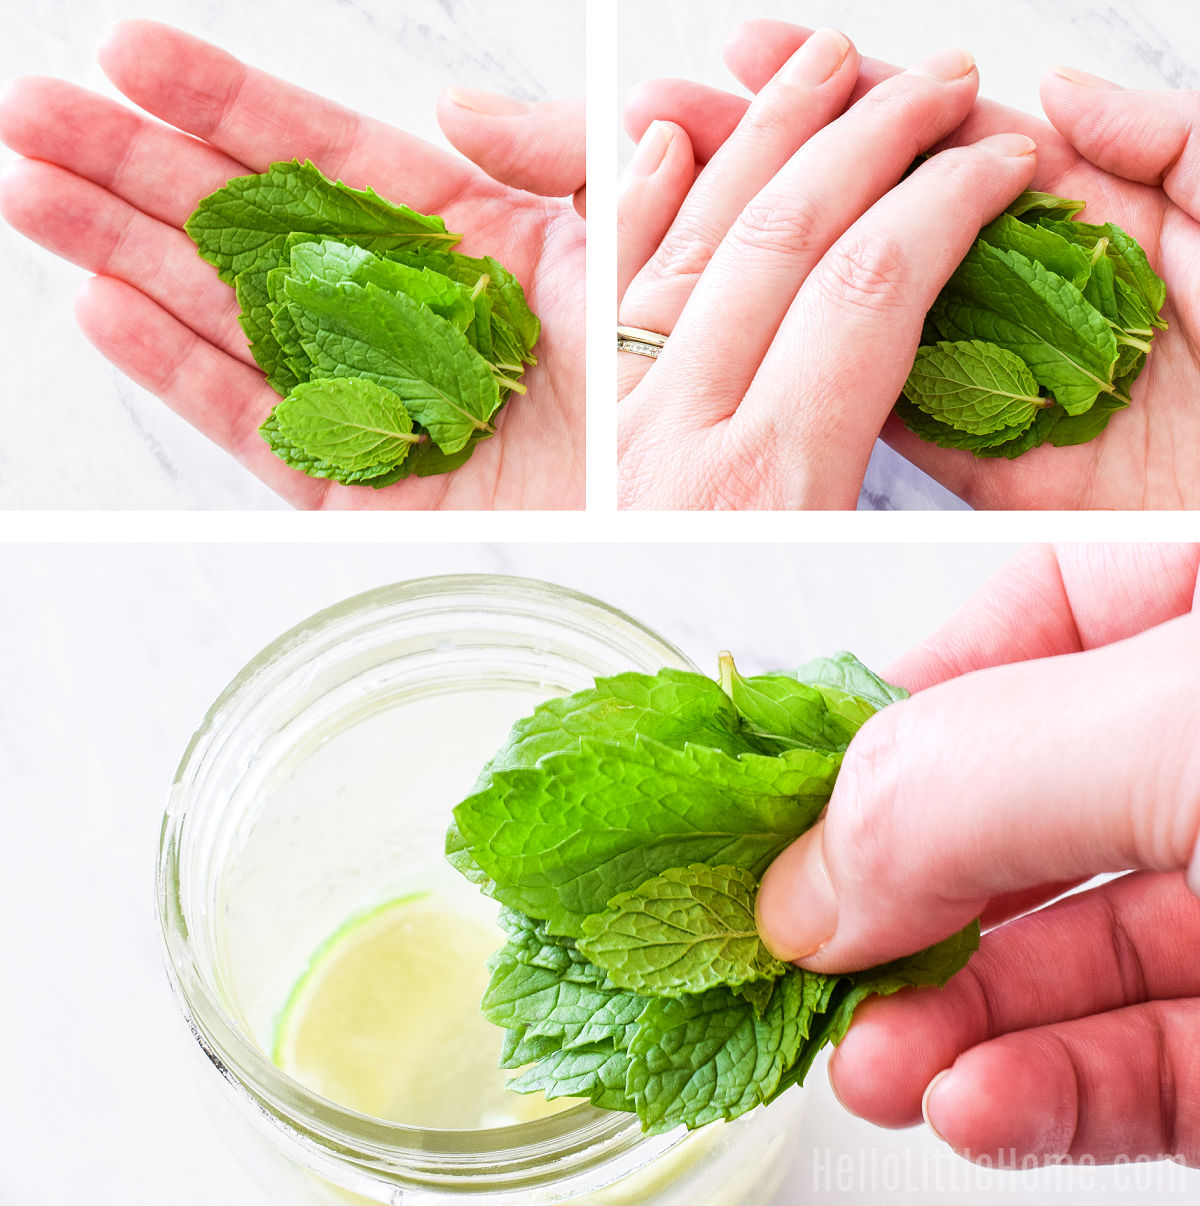 A photo collage showing how to prepare mint for the drink.